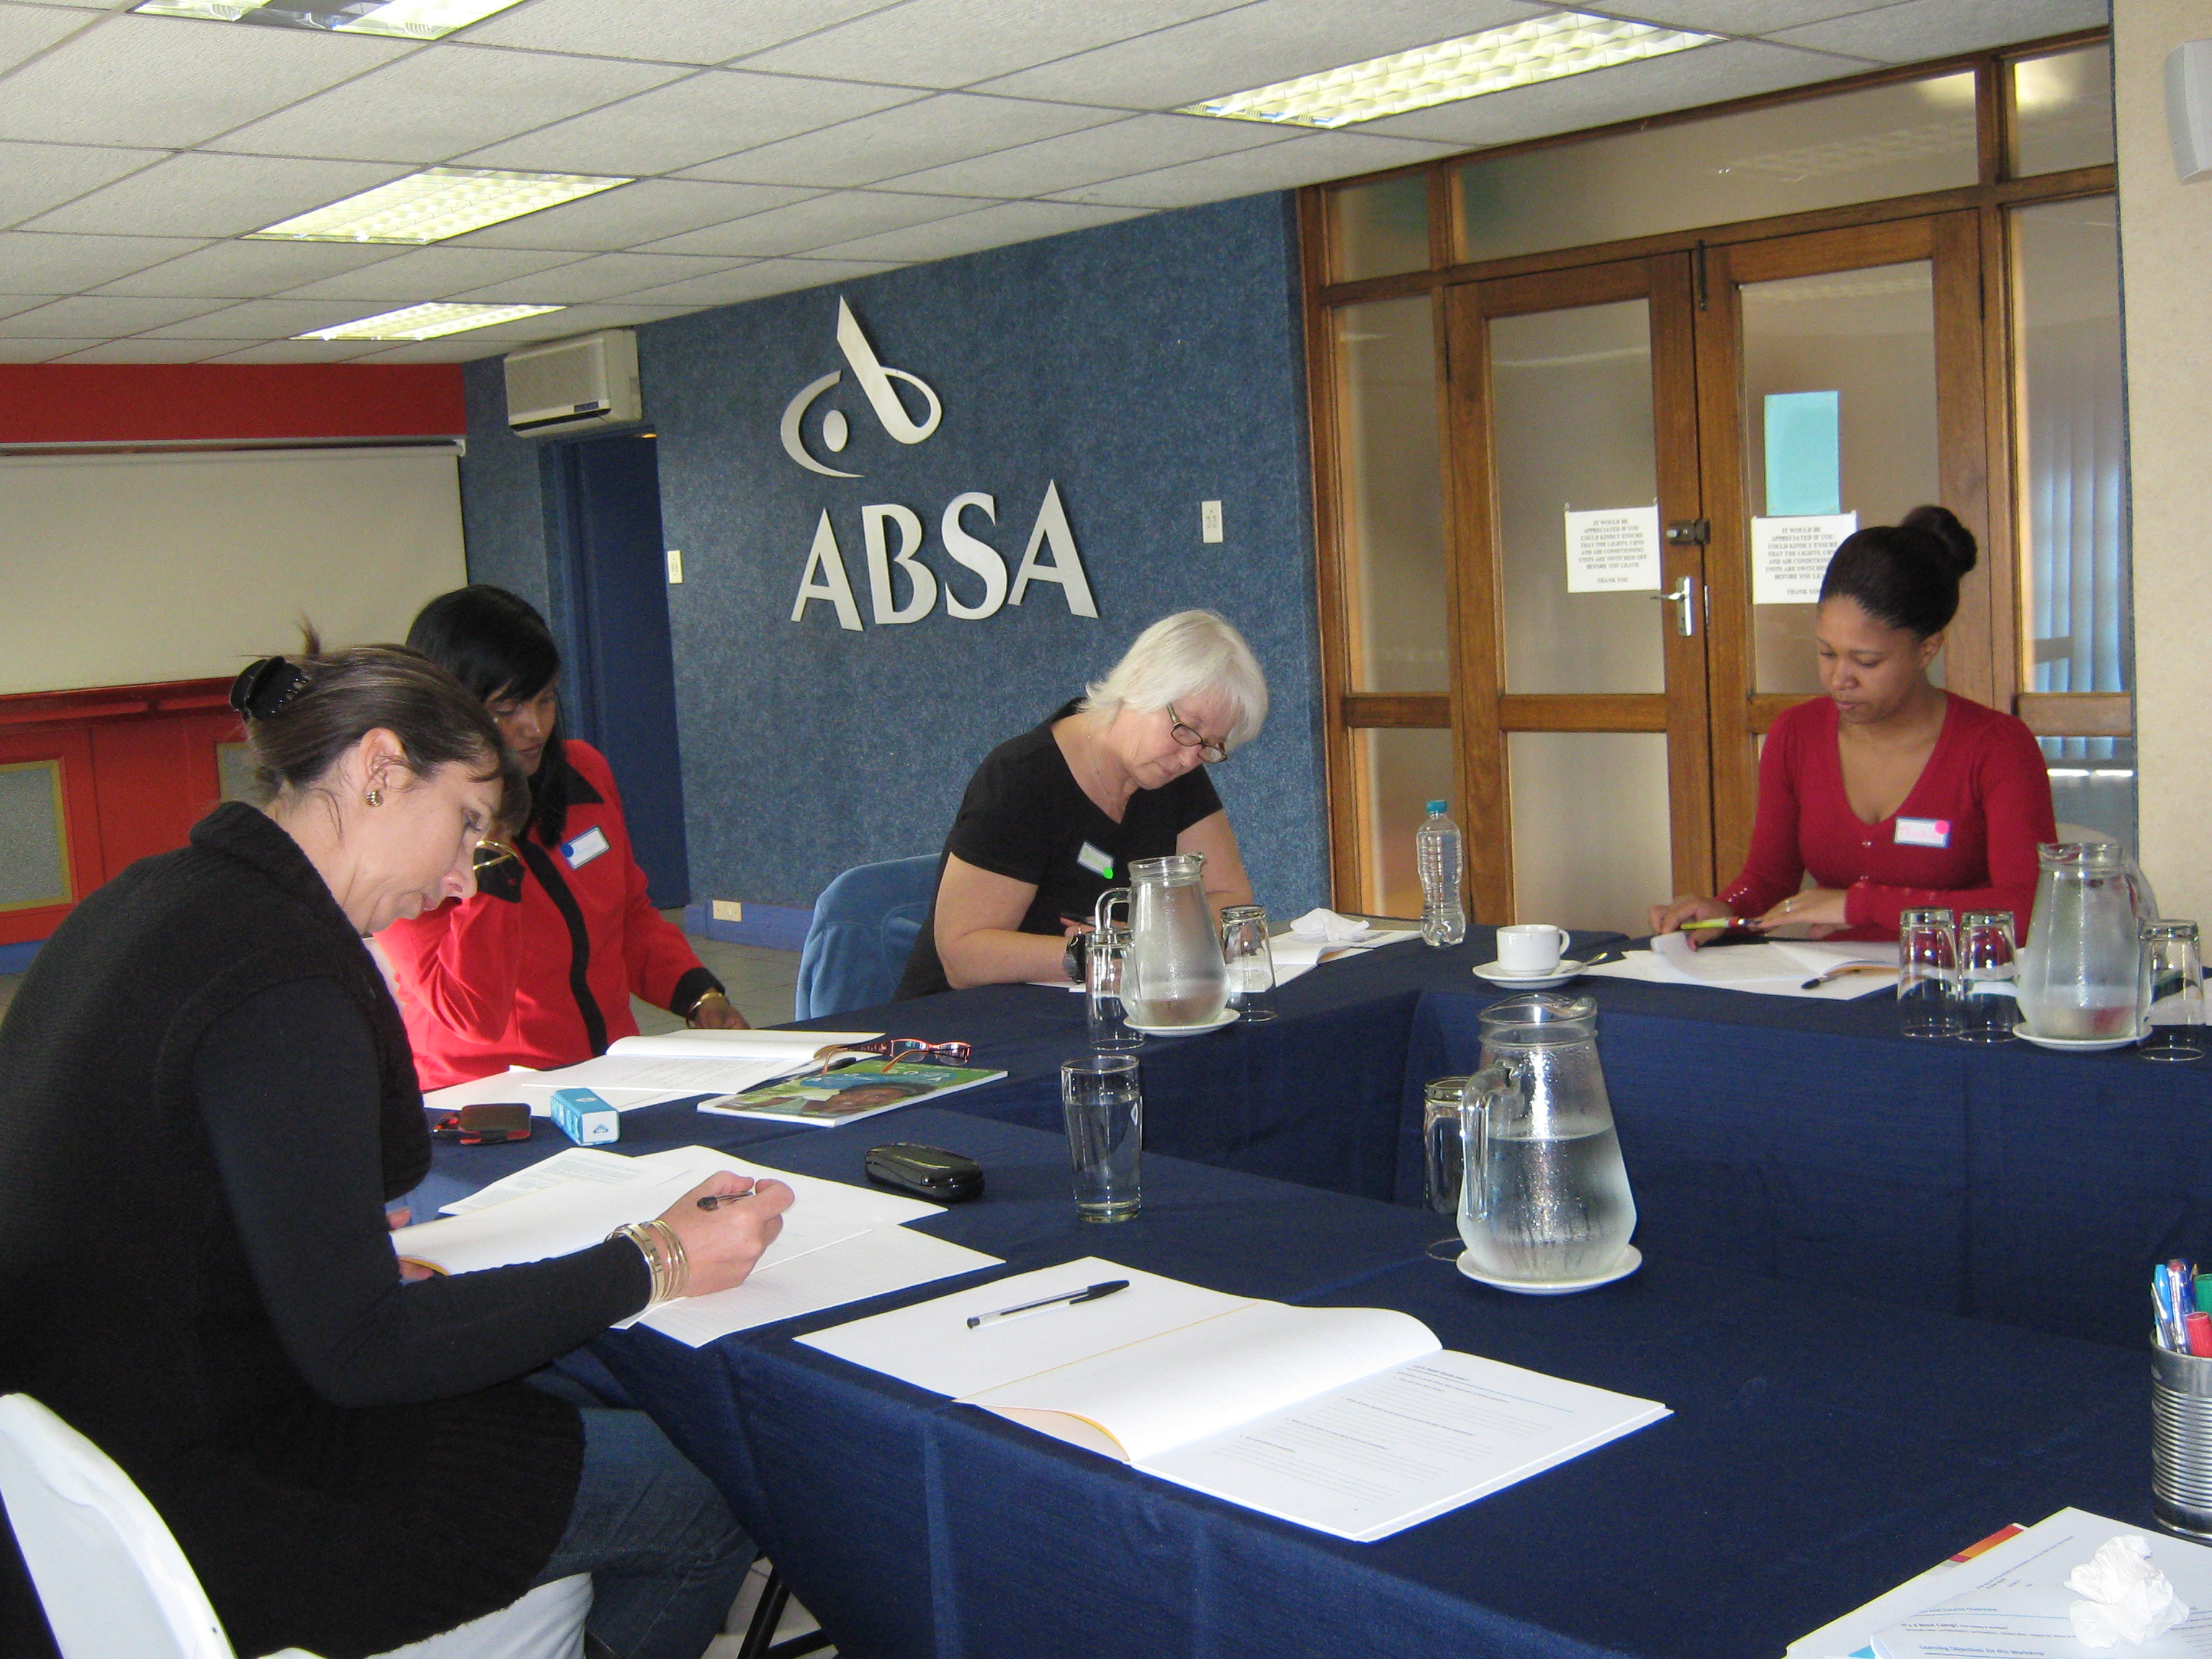 Maralyn, Angie, Shan and Thobile hard at work